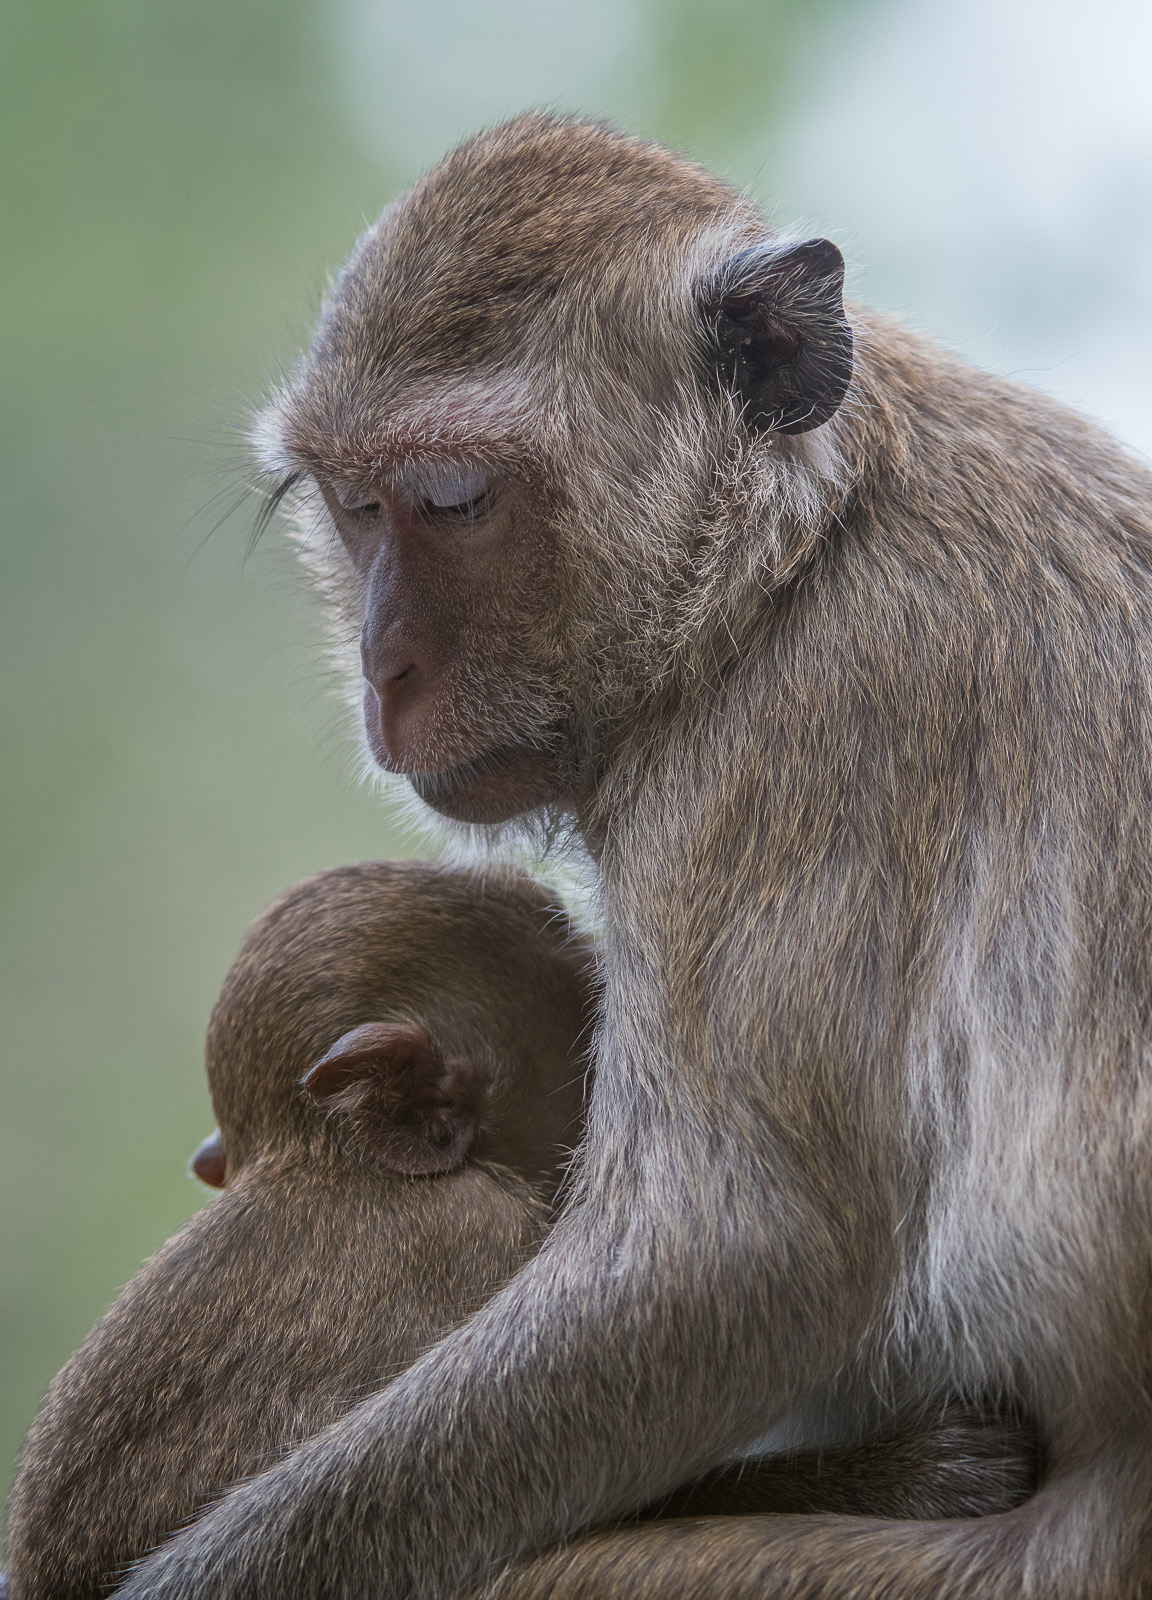 long_tailed_macaque_12.jpg